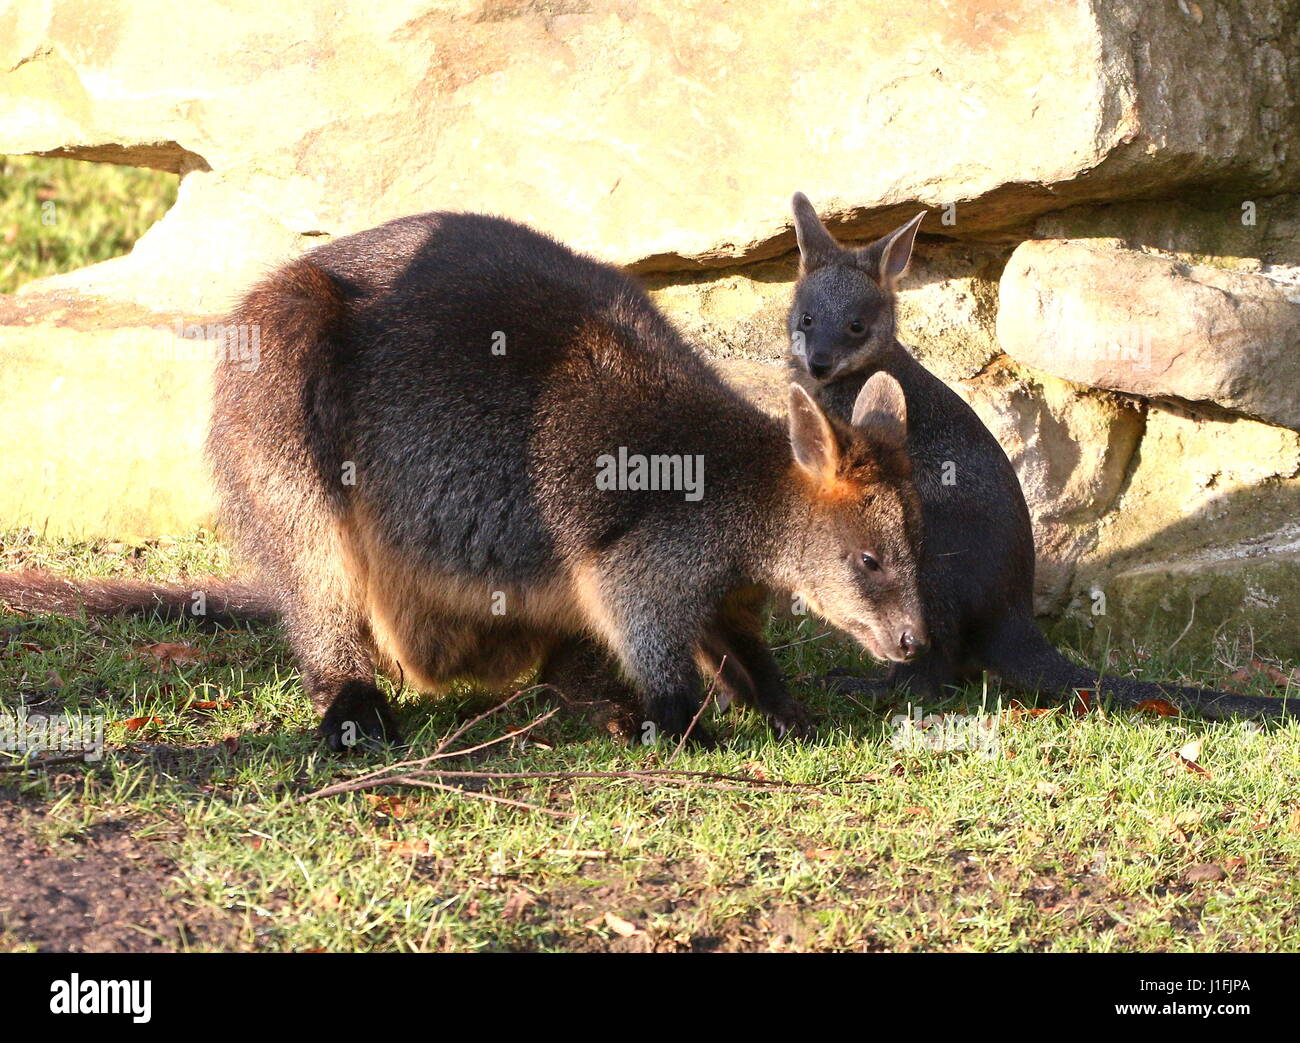 Baby Swamp Wallaby joey (Wallabia bicolor) feeding with his mother. A.k.a. Black Pademelon or East Australian Black-tailed Wallaby Stock Photo